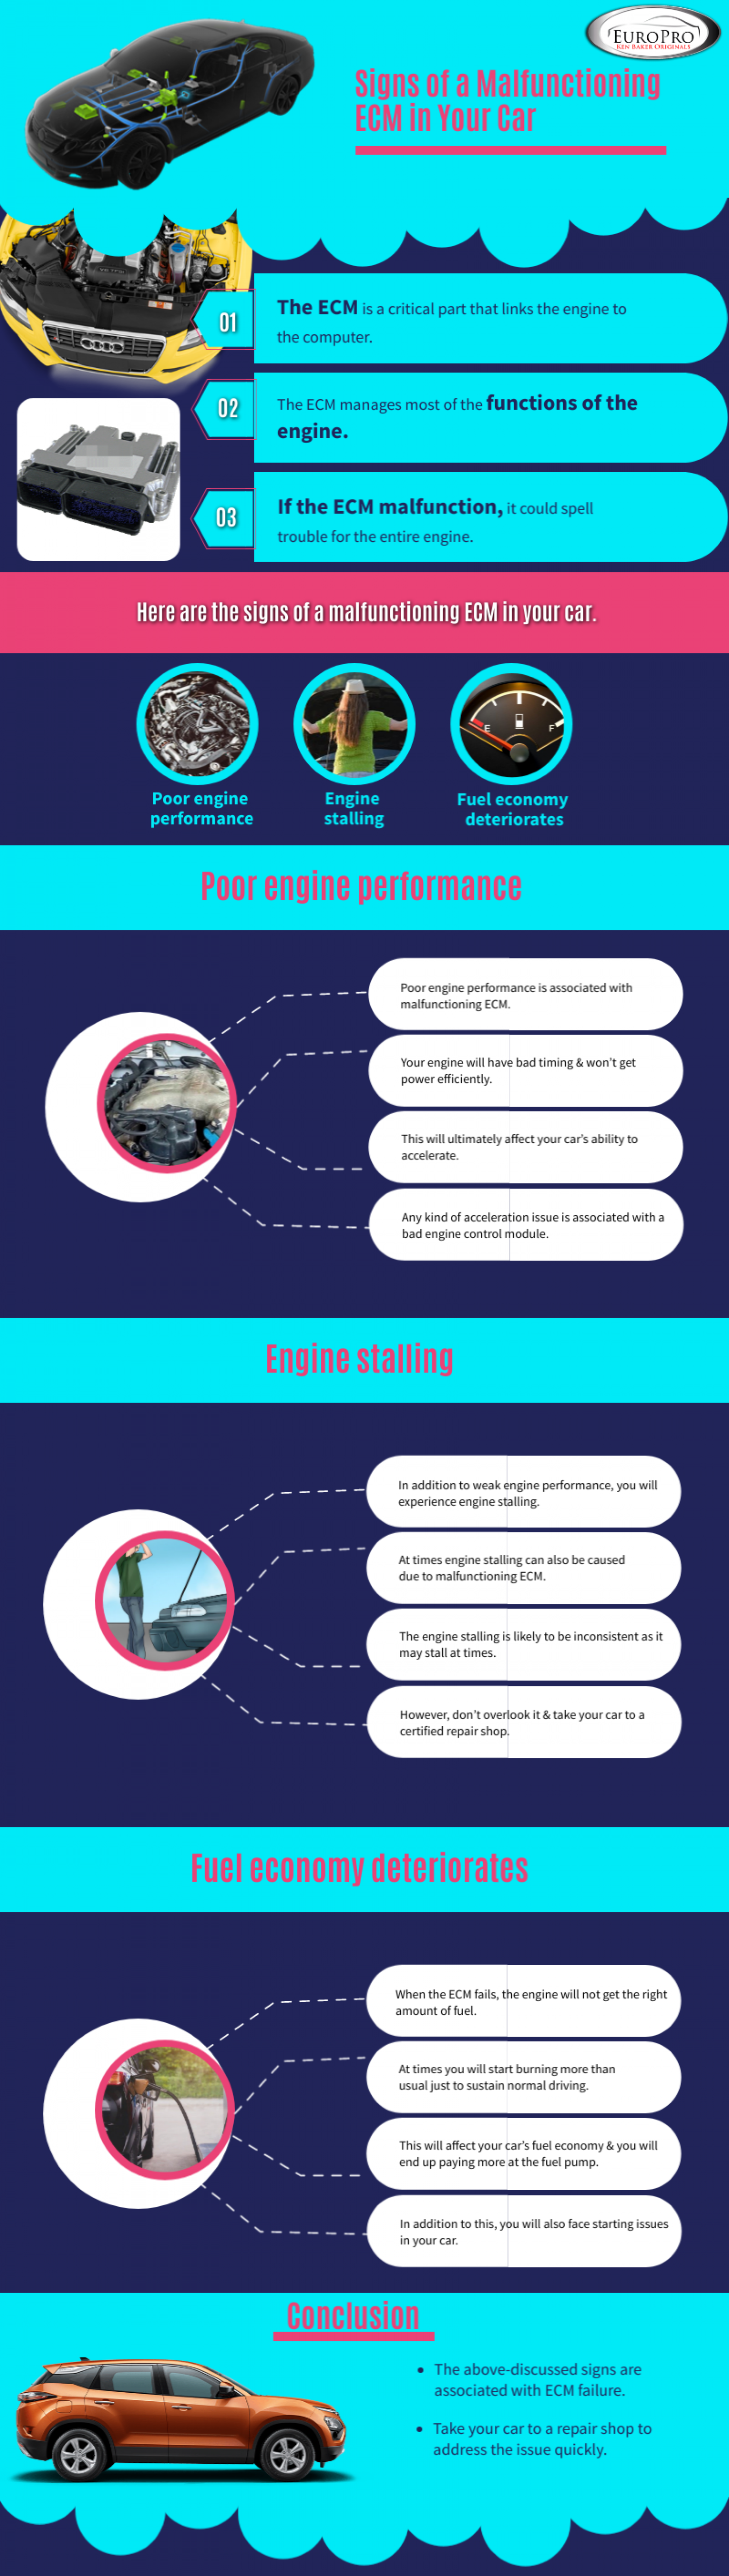 Signs of a malfunctioning ECM in your car Infographic